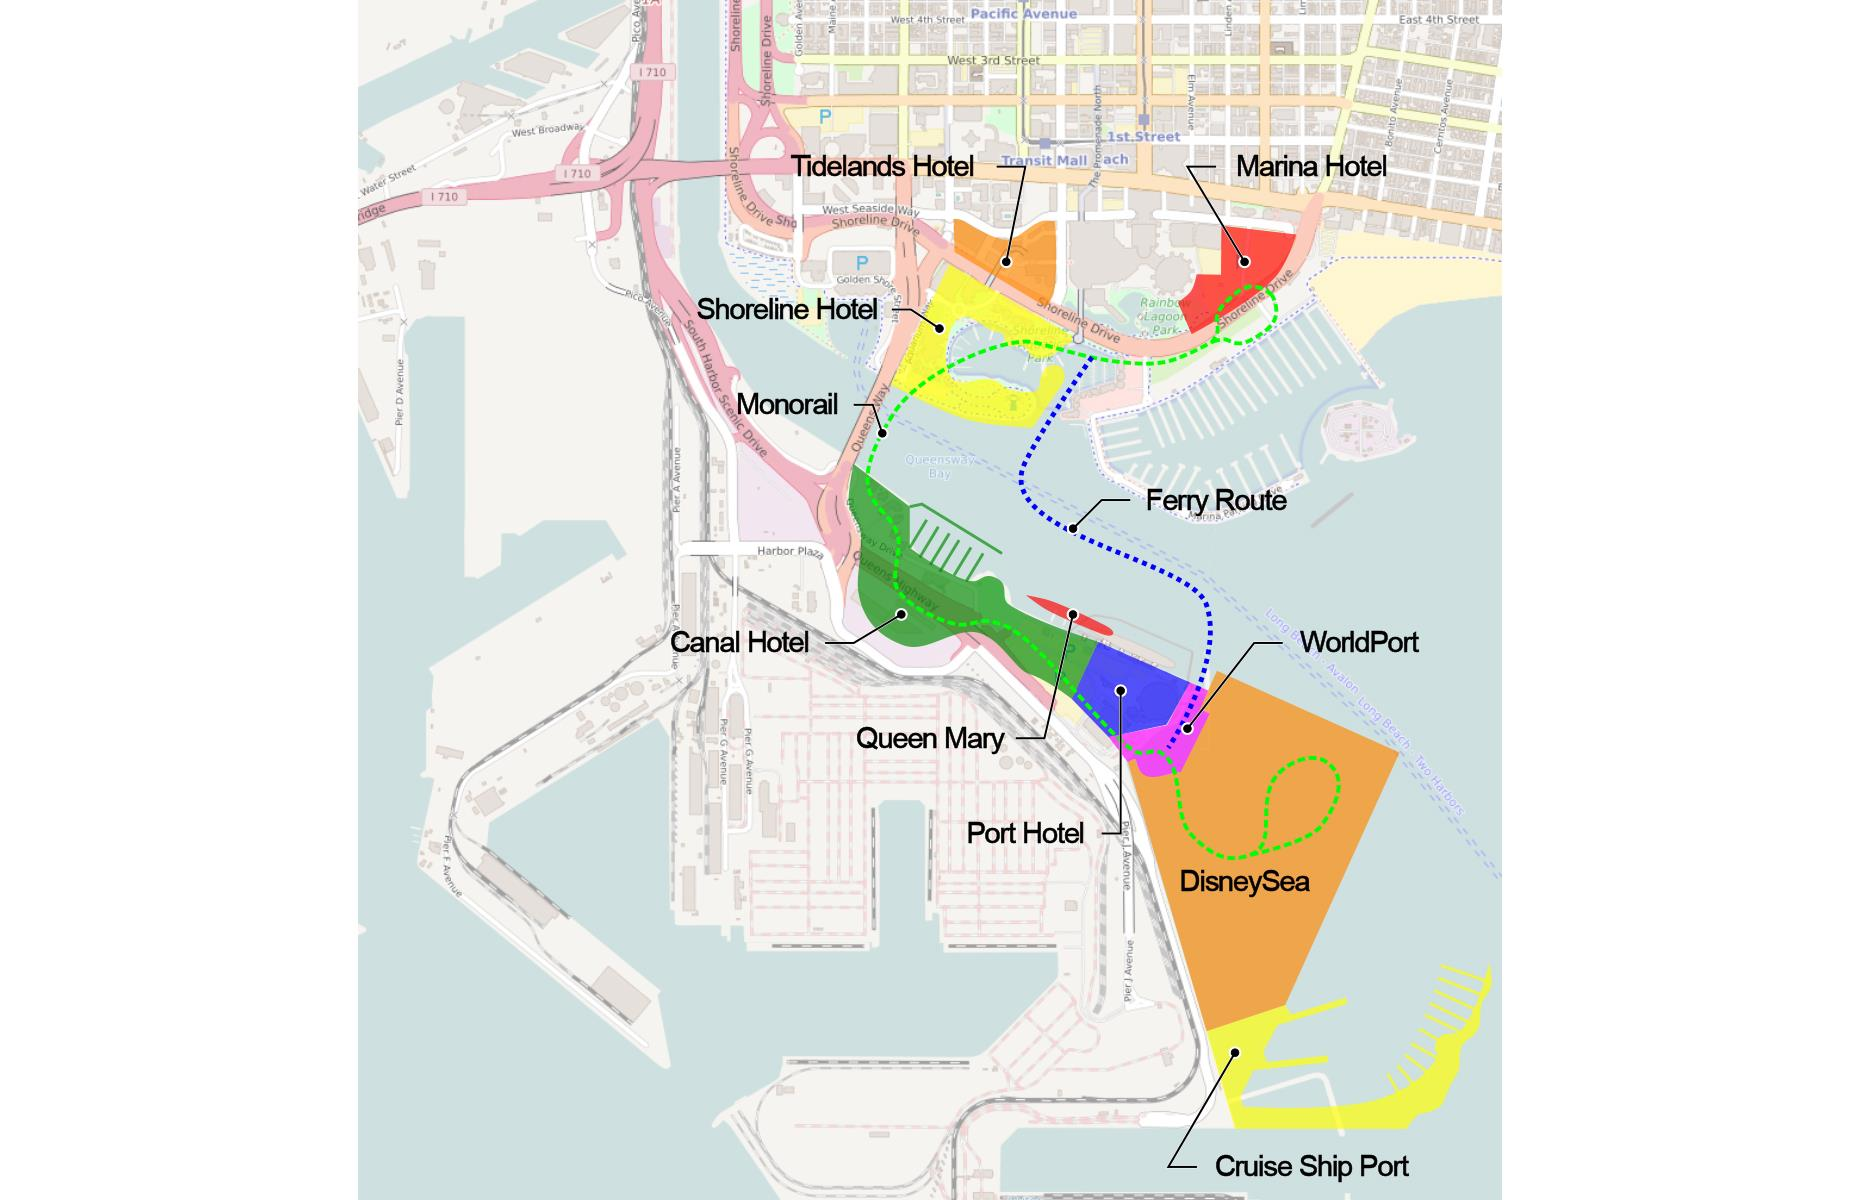 Slide 10 of 28: Port Disney, planned for Long Beach in California, was another failed Disney endeavor. The concept, which was introduced in 1990, would have sprawled across 443 acres and included a cruise port and theme park (named DisneySea), plus shops, resort hotels and entertainment. However, the project was met with disapproval from locals who were concerned about the site's environmental impact and heavy traffic.